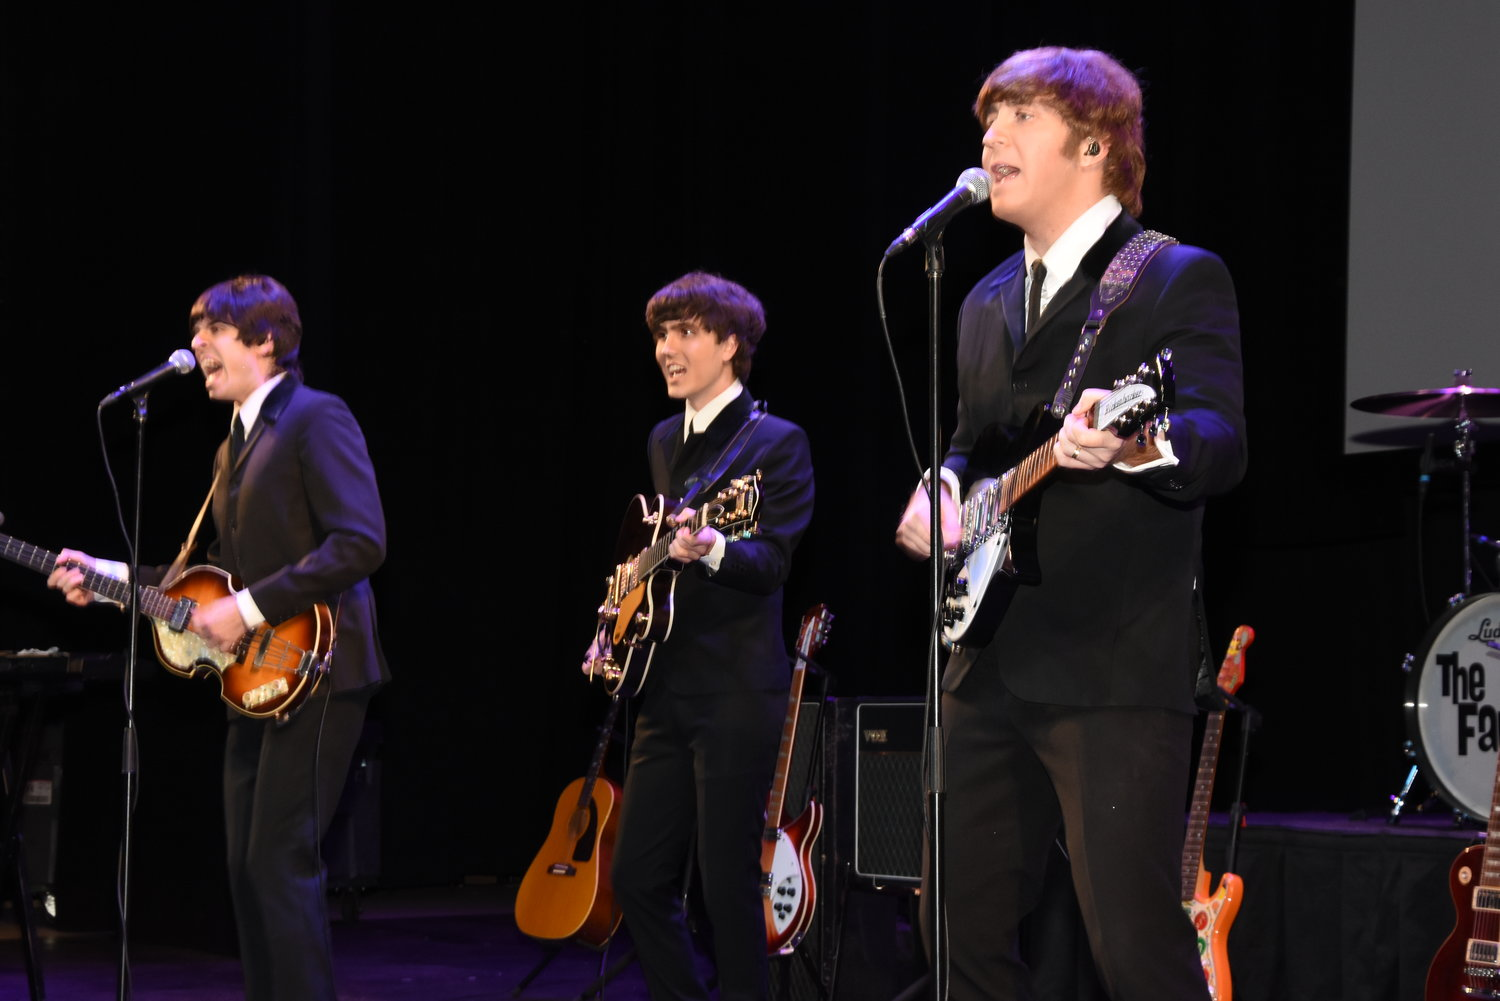 The Fab Four played the music of The Beatles during the gala. Based in California, the group has been paying homage to The Beatles since 1997.